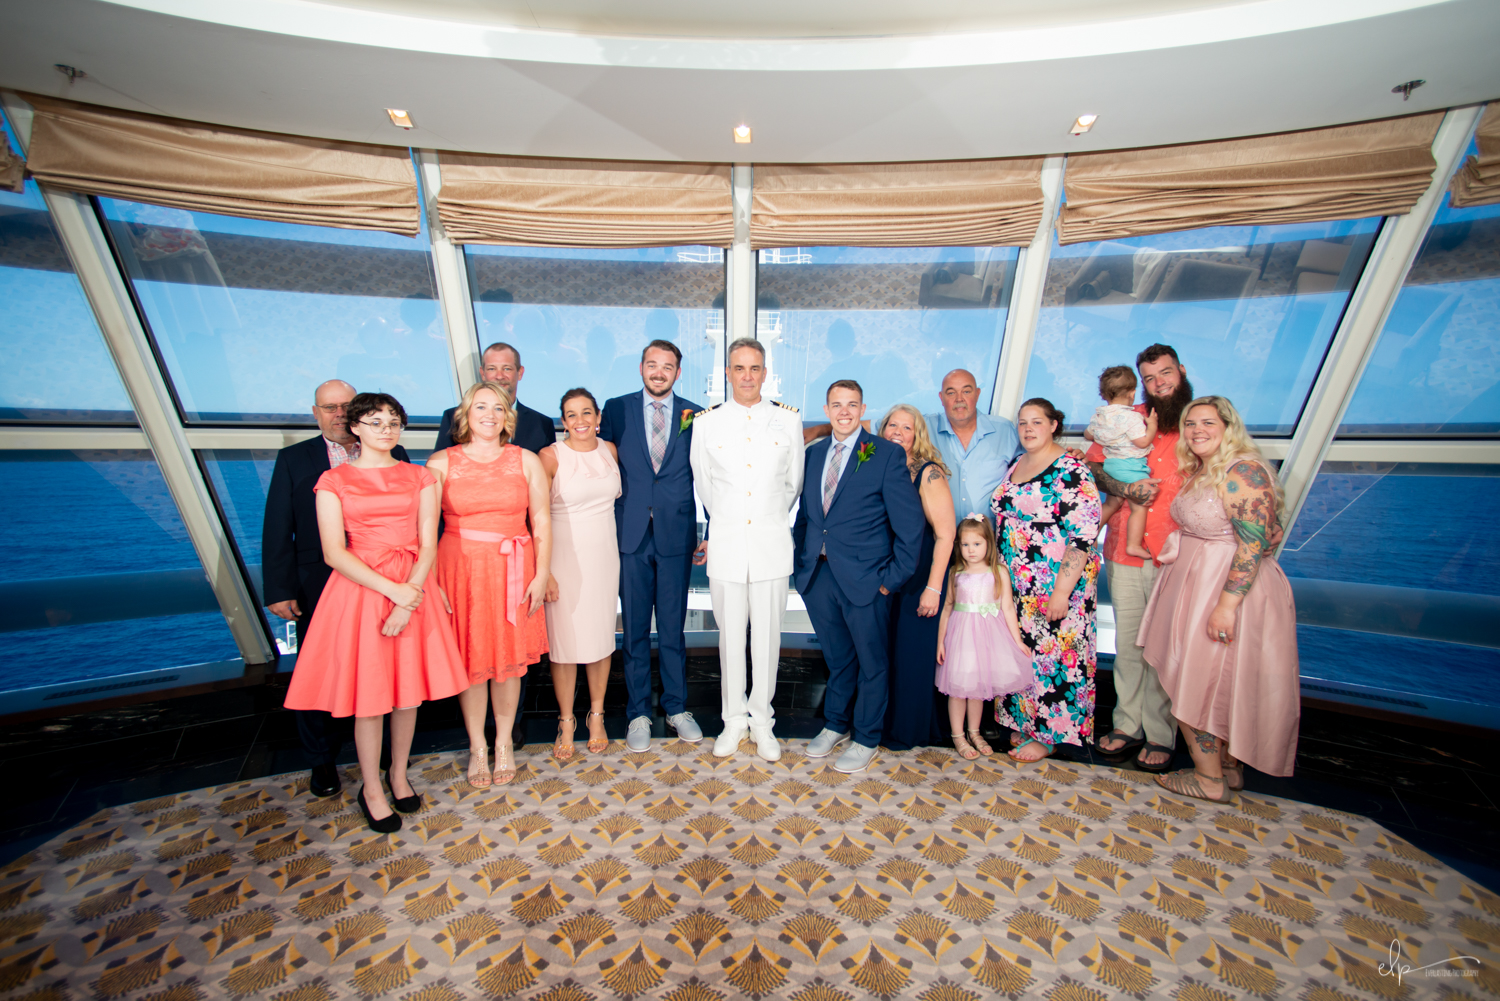 Disney-Cruise-Disney-Fantasy-Outlook-Wedding-Photography-2.jpg